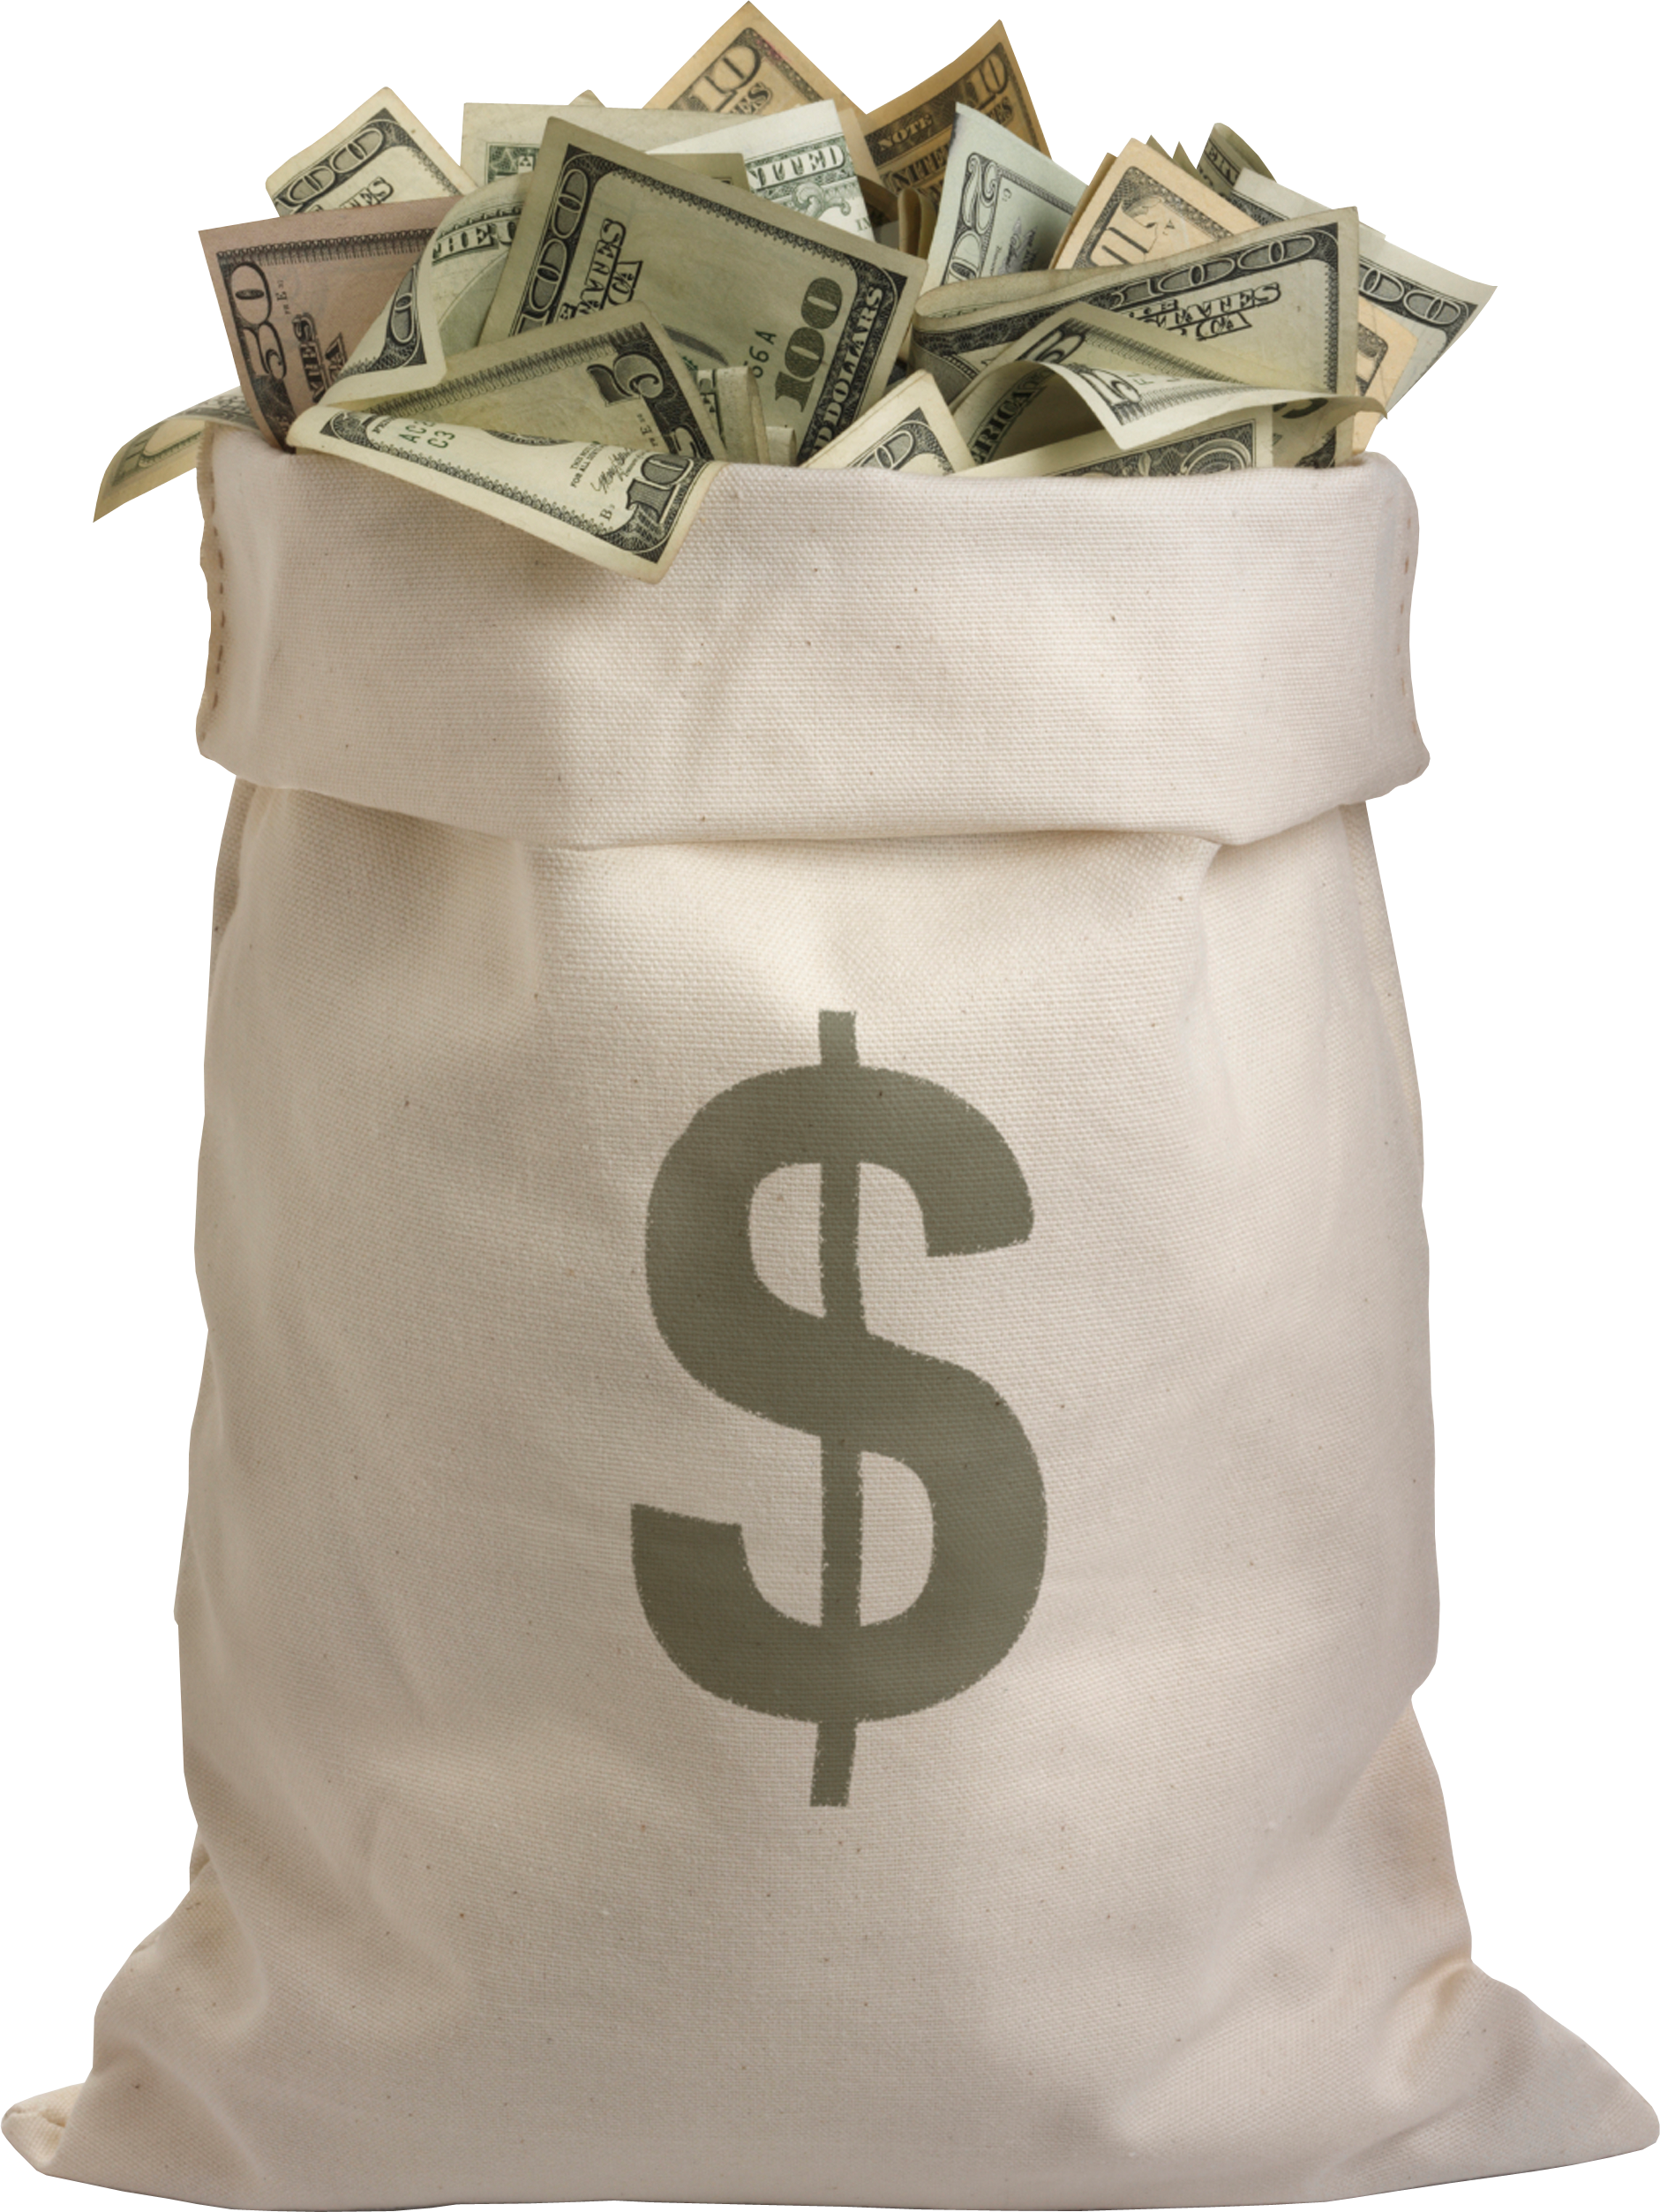 Bag of four isolated. Economy clipart money donation